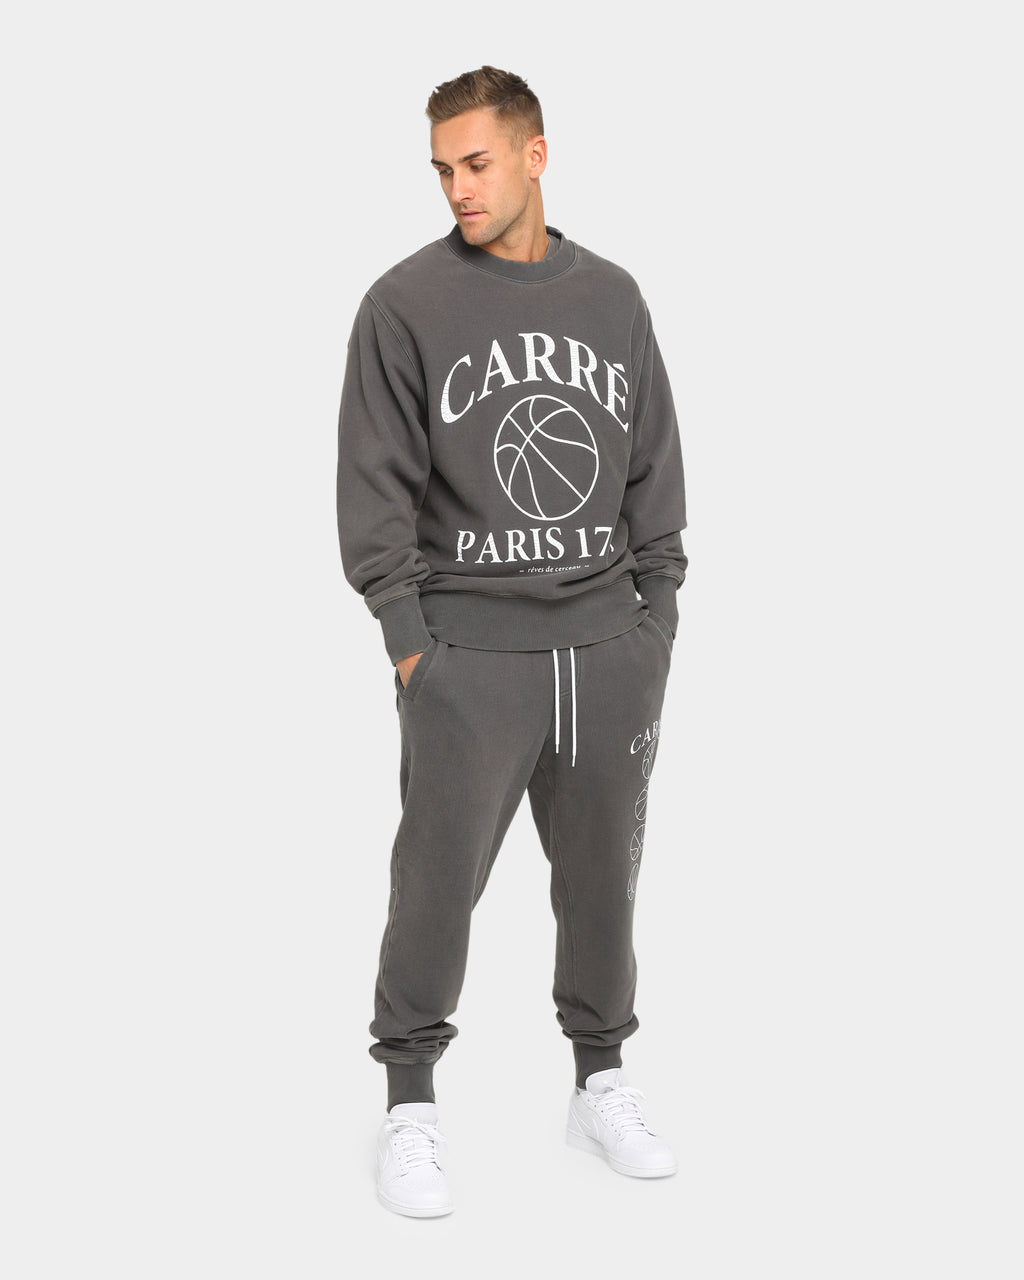 Carré Men's Hoop Dreams Classique Crewneck Grey/White